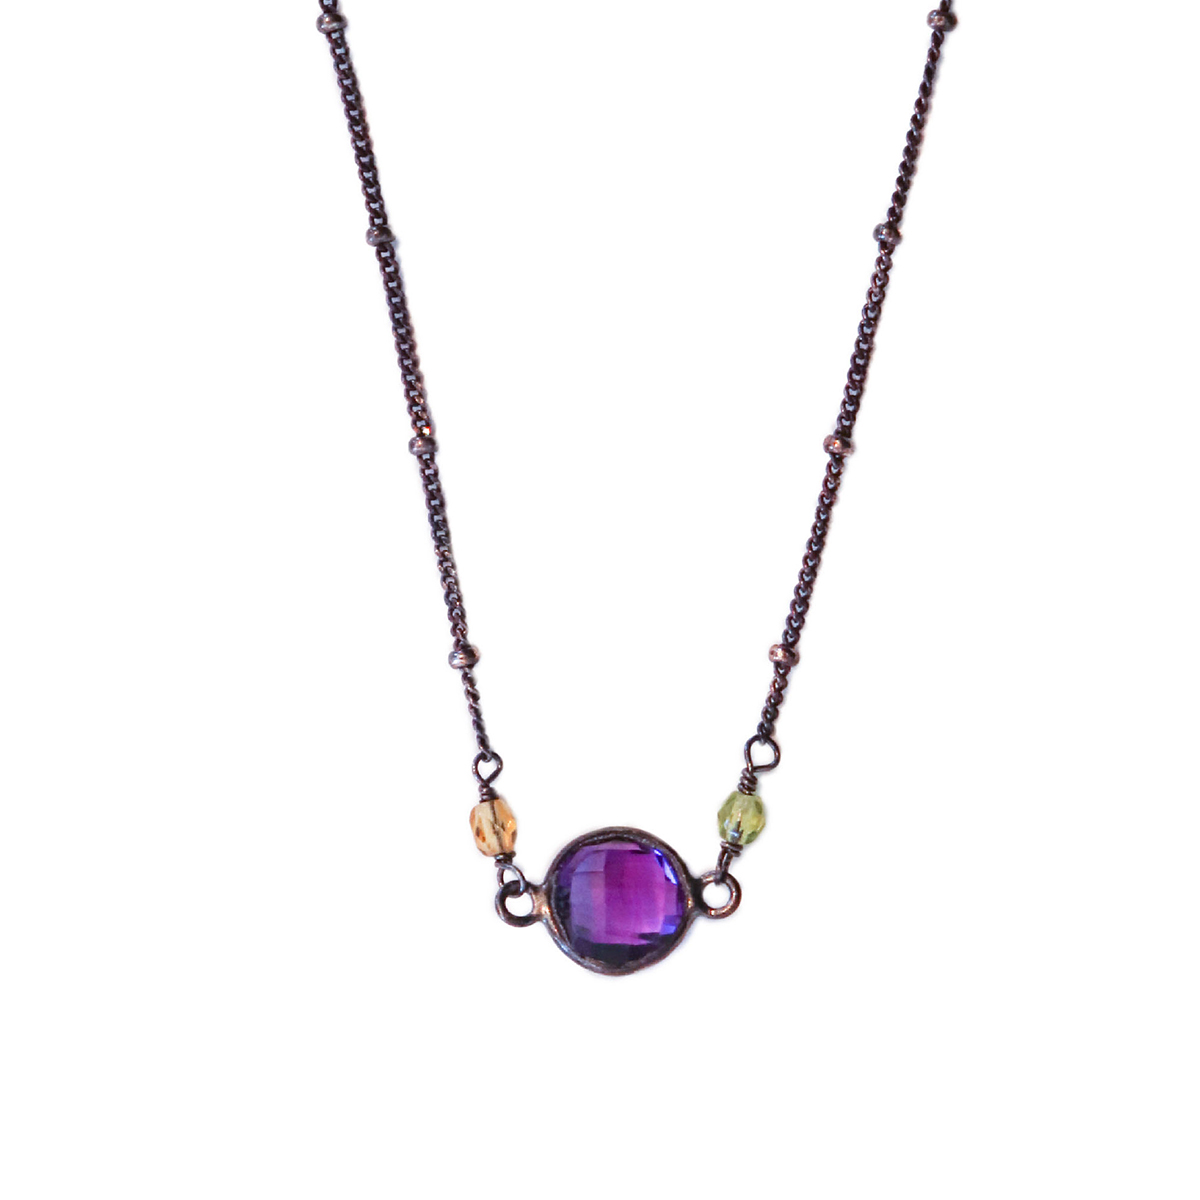 ANNA BALKAN - AMETHYST LAYERED NECKLACE - GEMSTONES